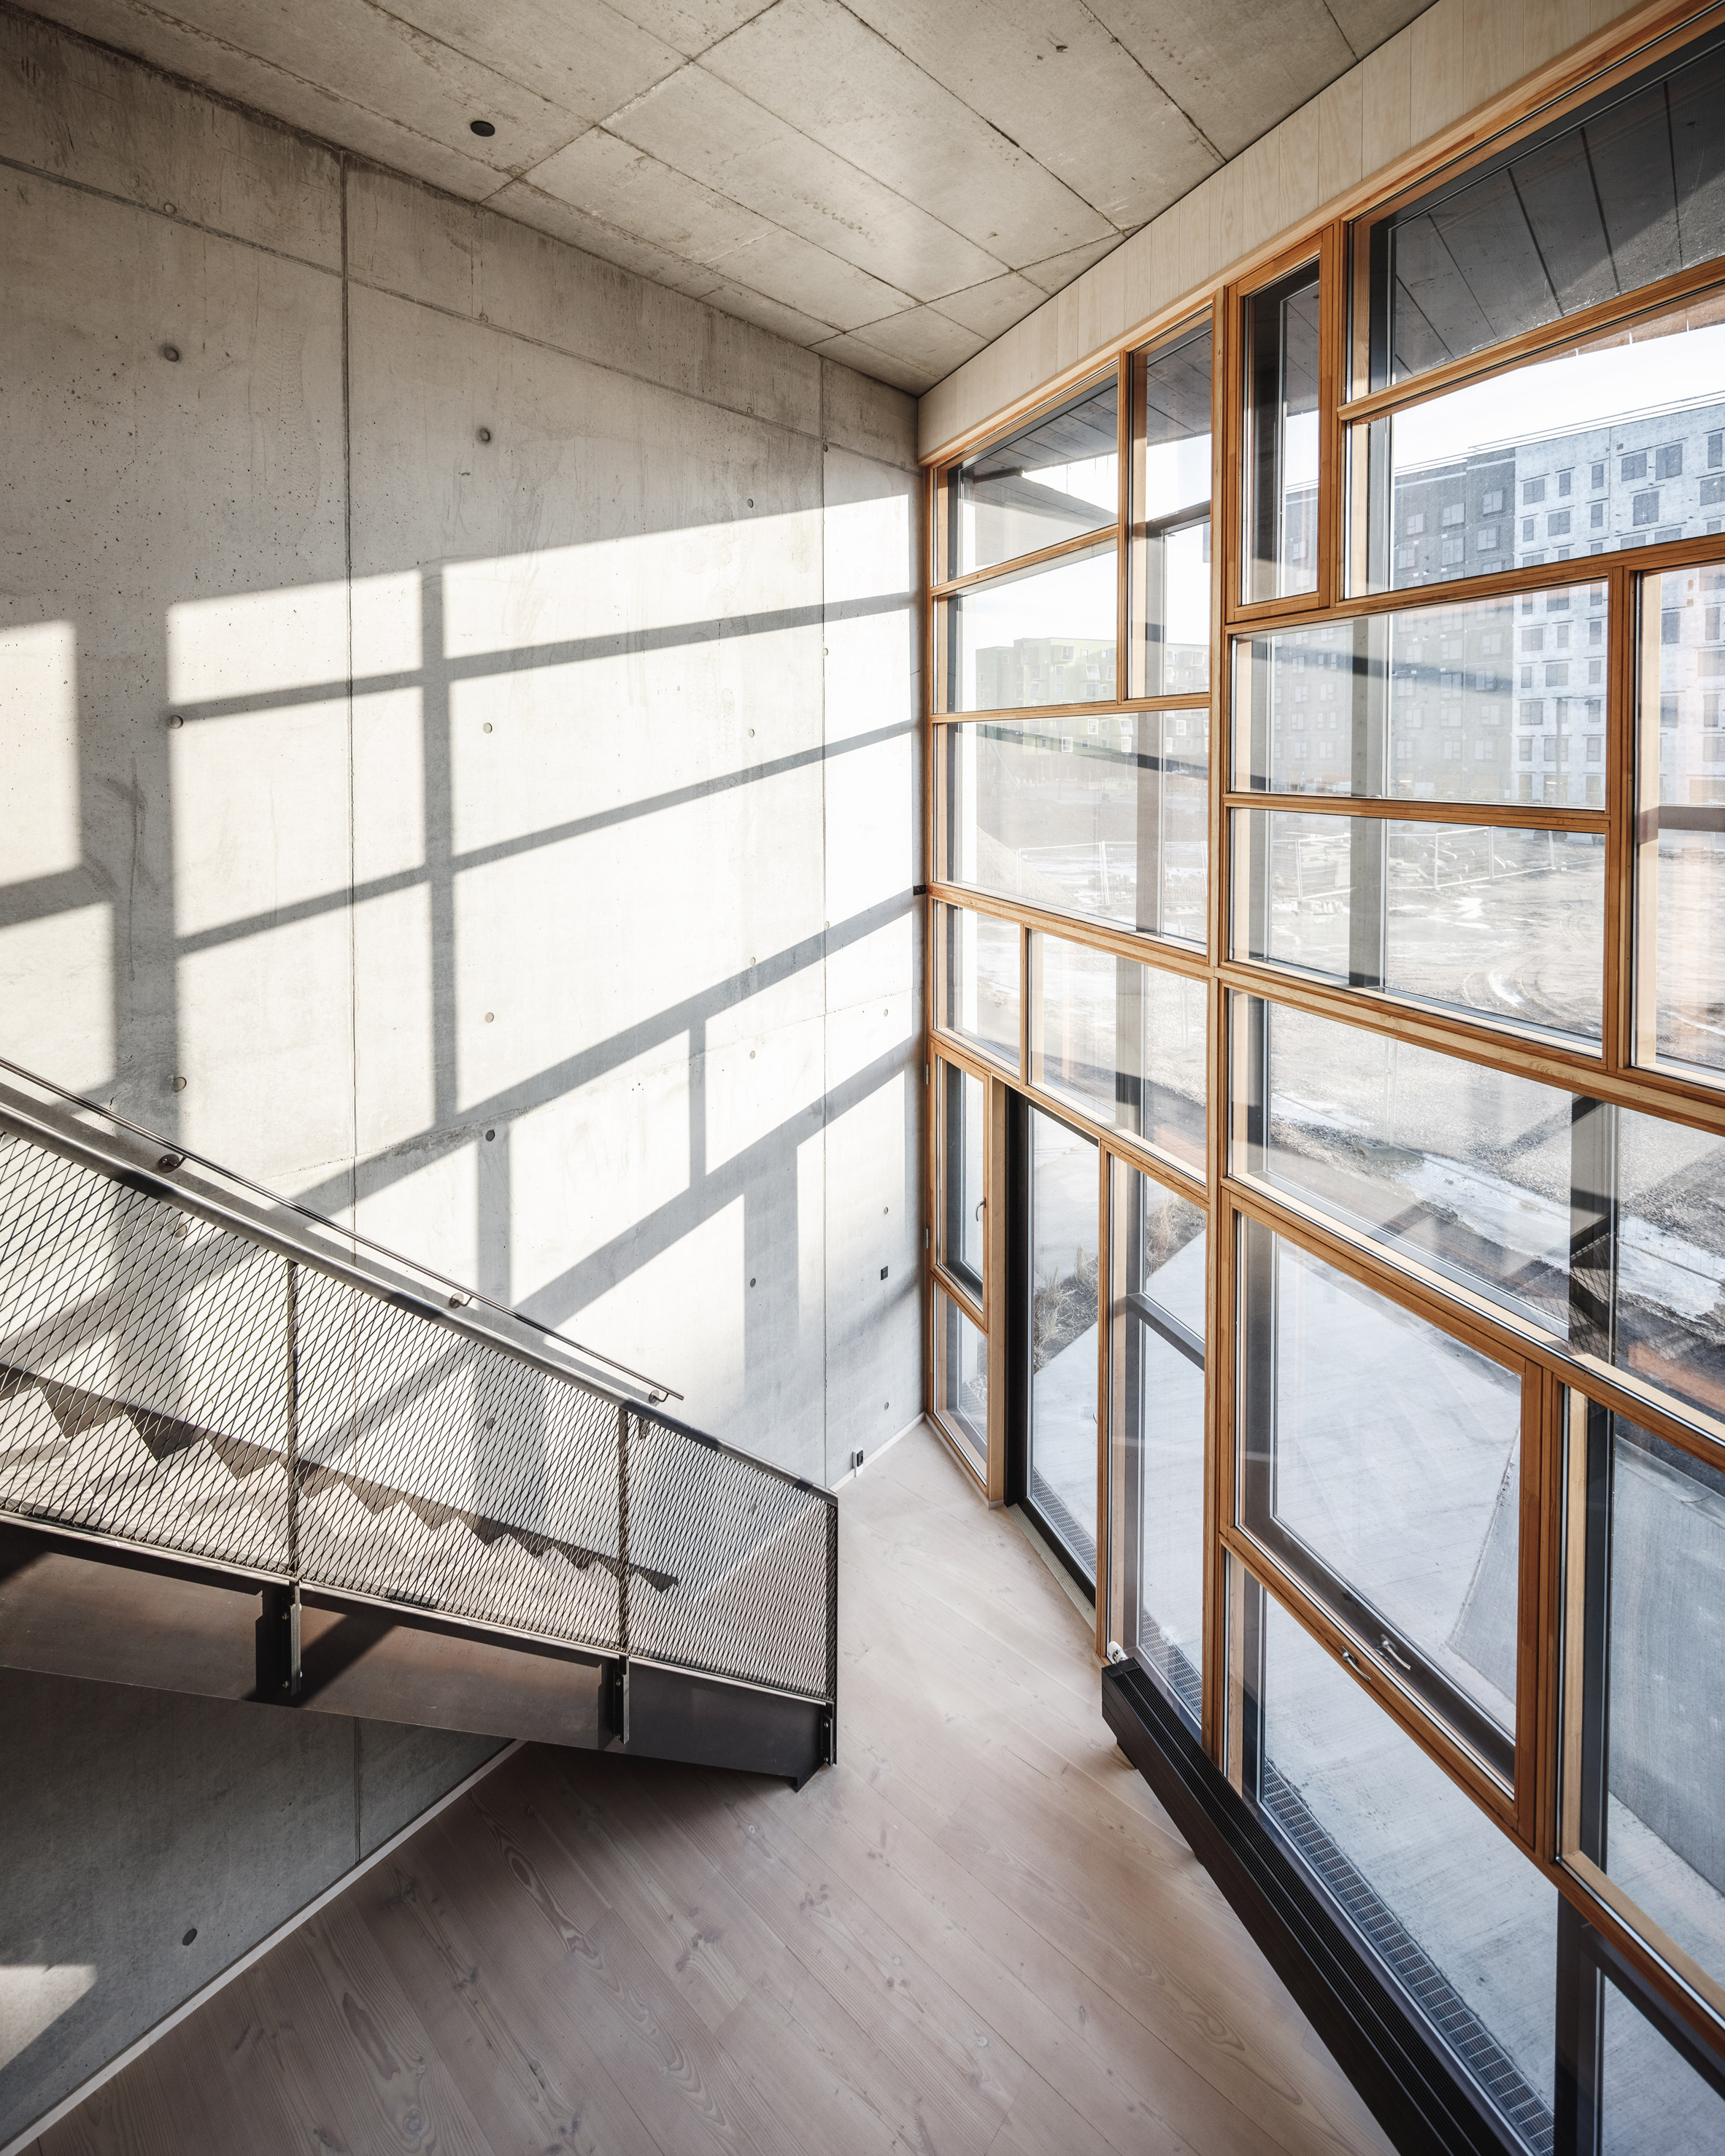 Lendager Group design Upcycle Studios in Denmark built from recycled materials